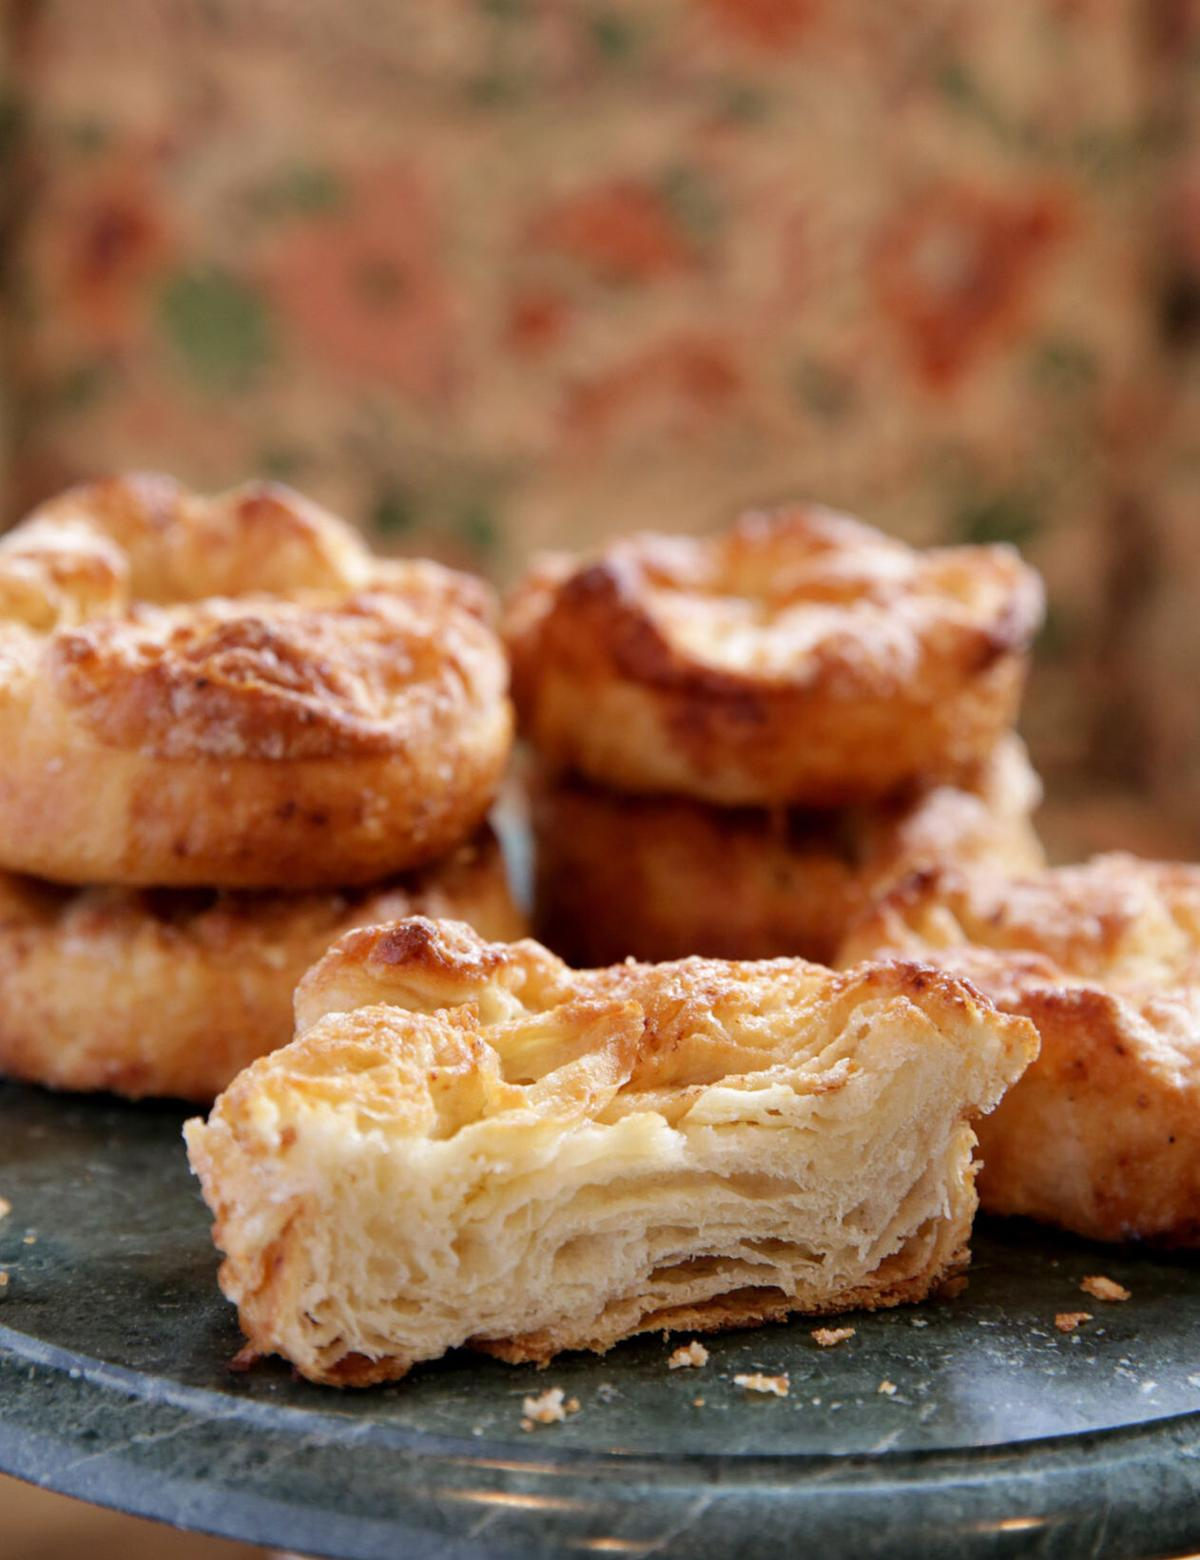 Kouign-amann is a rich, dense pastry.